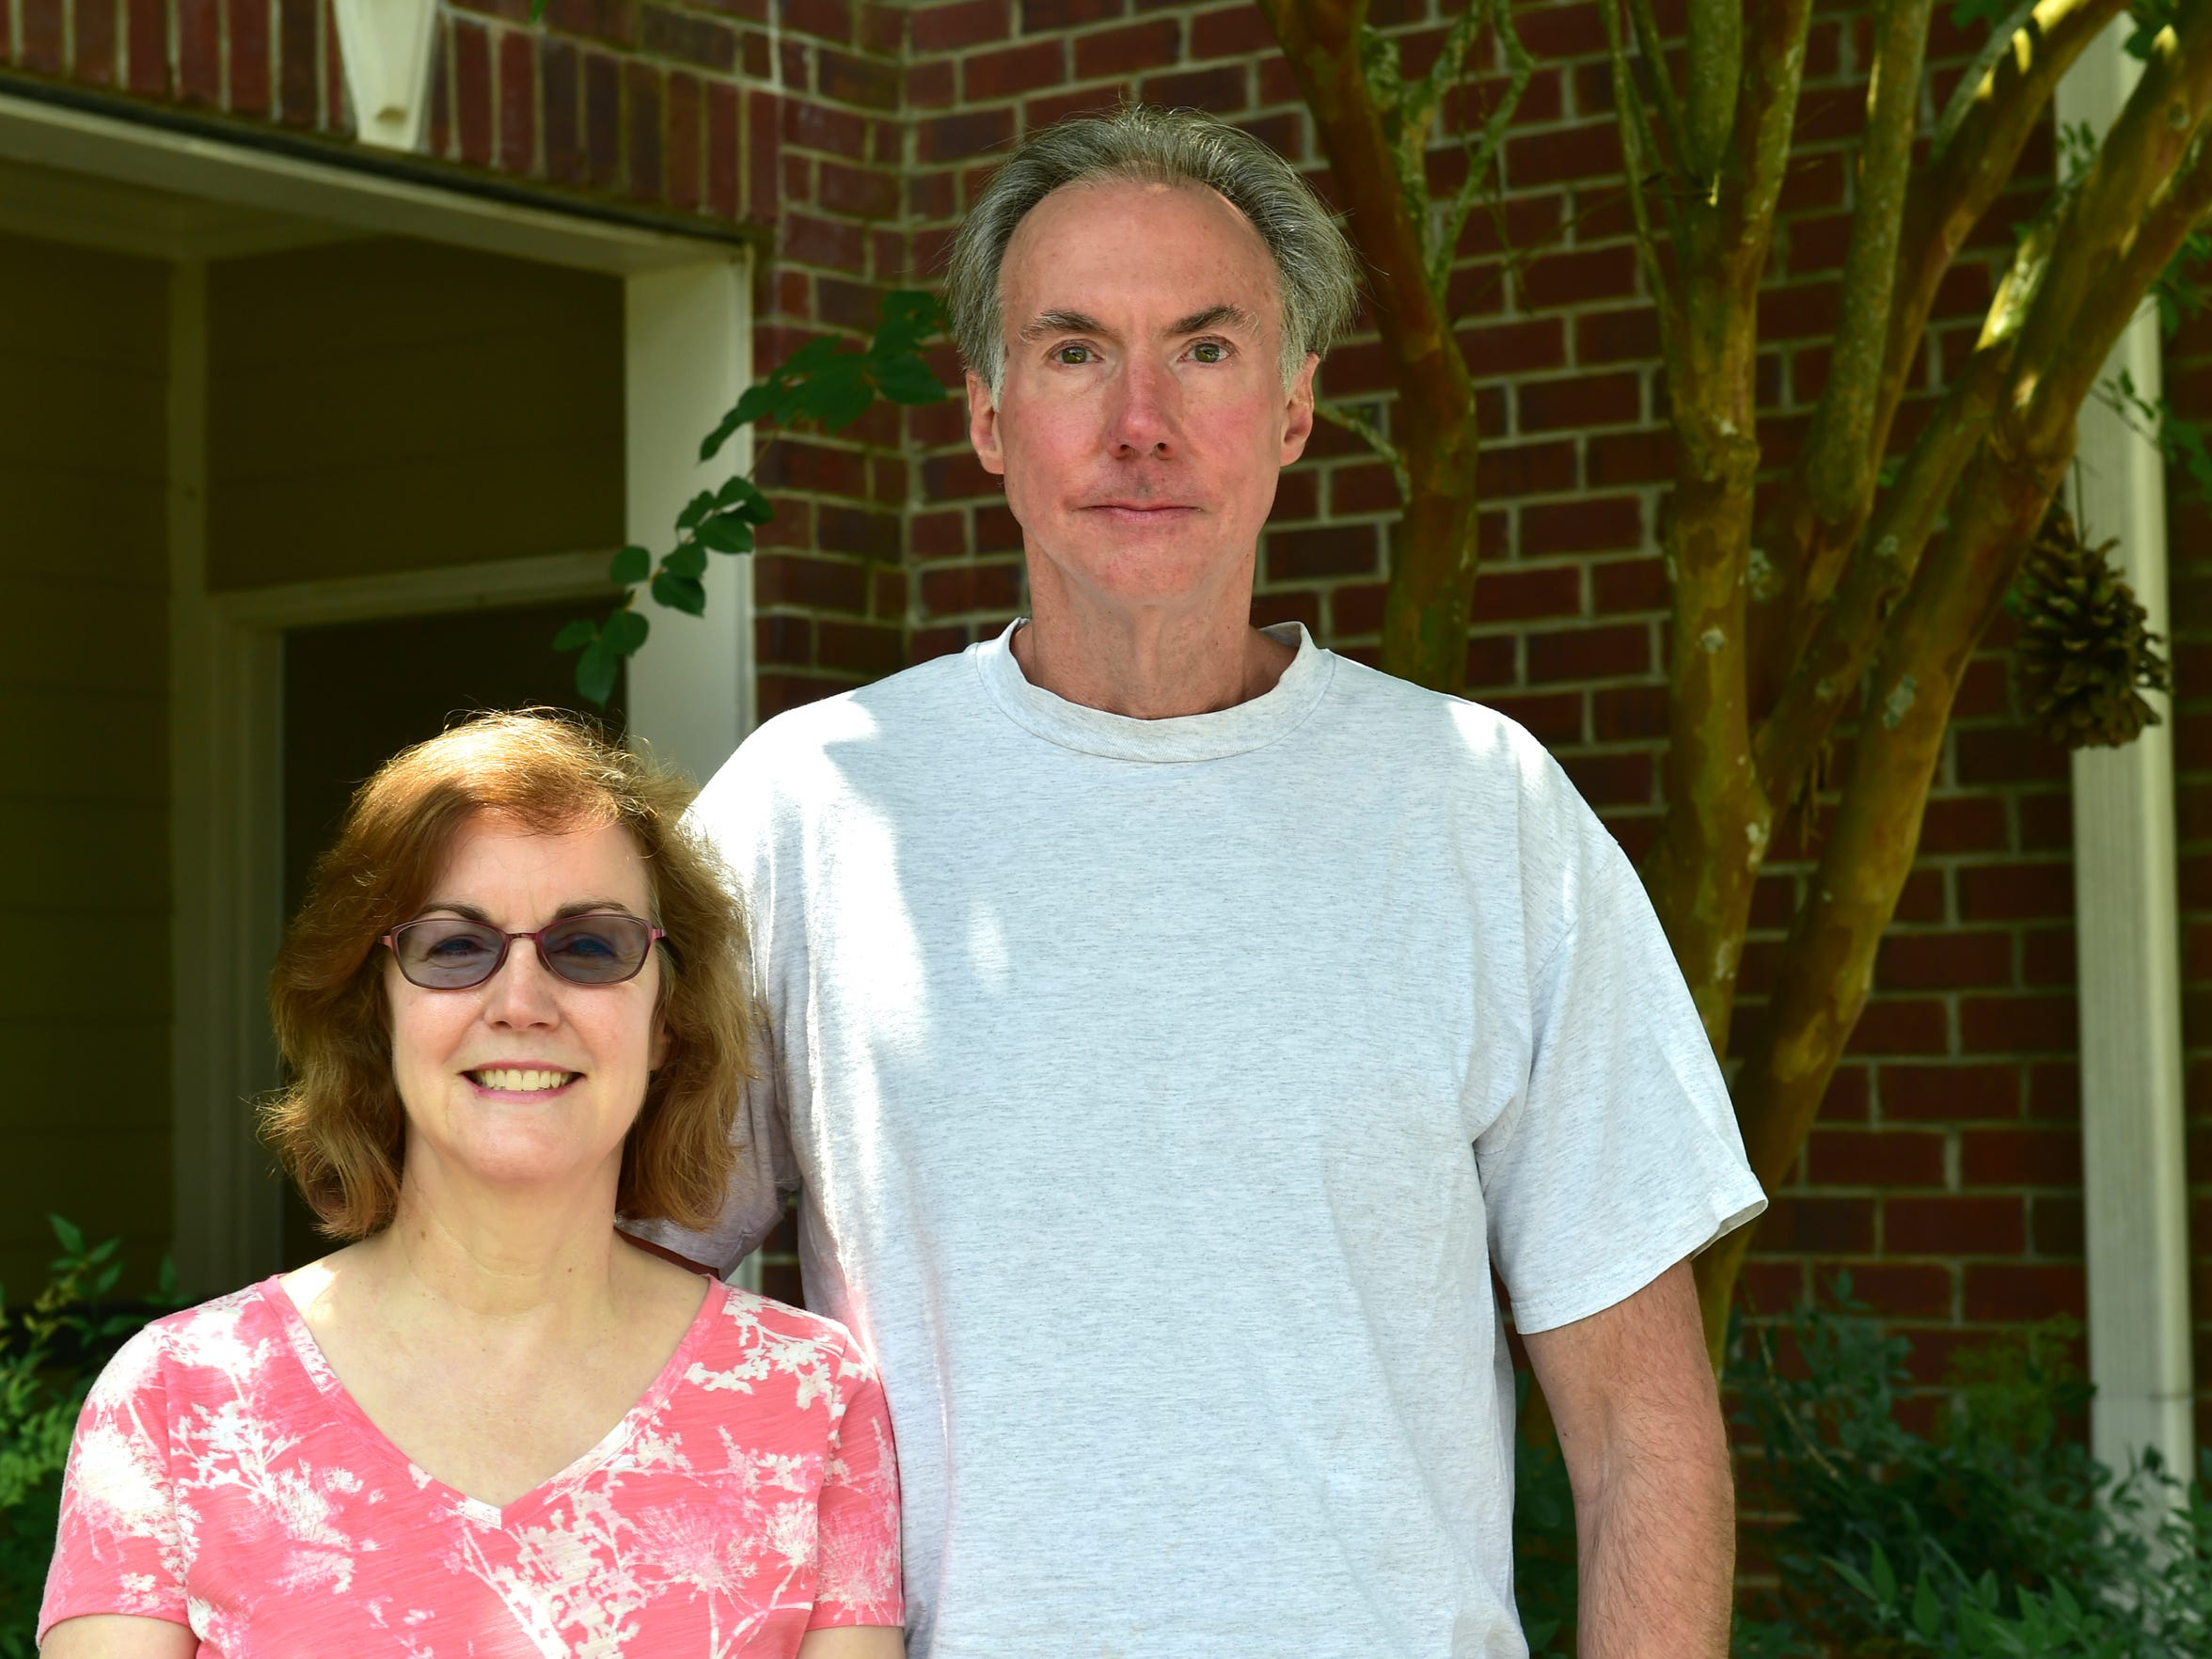 Jack Wayne and wife Catherine stand outside their apartment in Hattiesburg. The couple were stuck with a Med-Trans air ambulance bill, the out-of-state company that contracts with Ochsner Health System of Louisiana among others, which charged Wayne $42,269.61 for air transport.